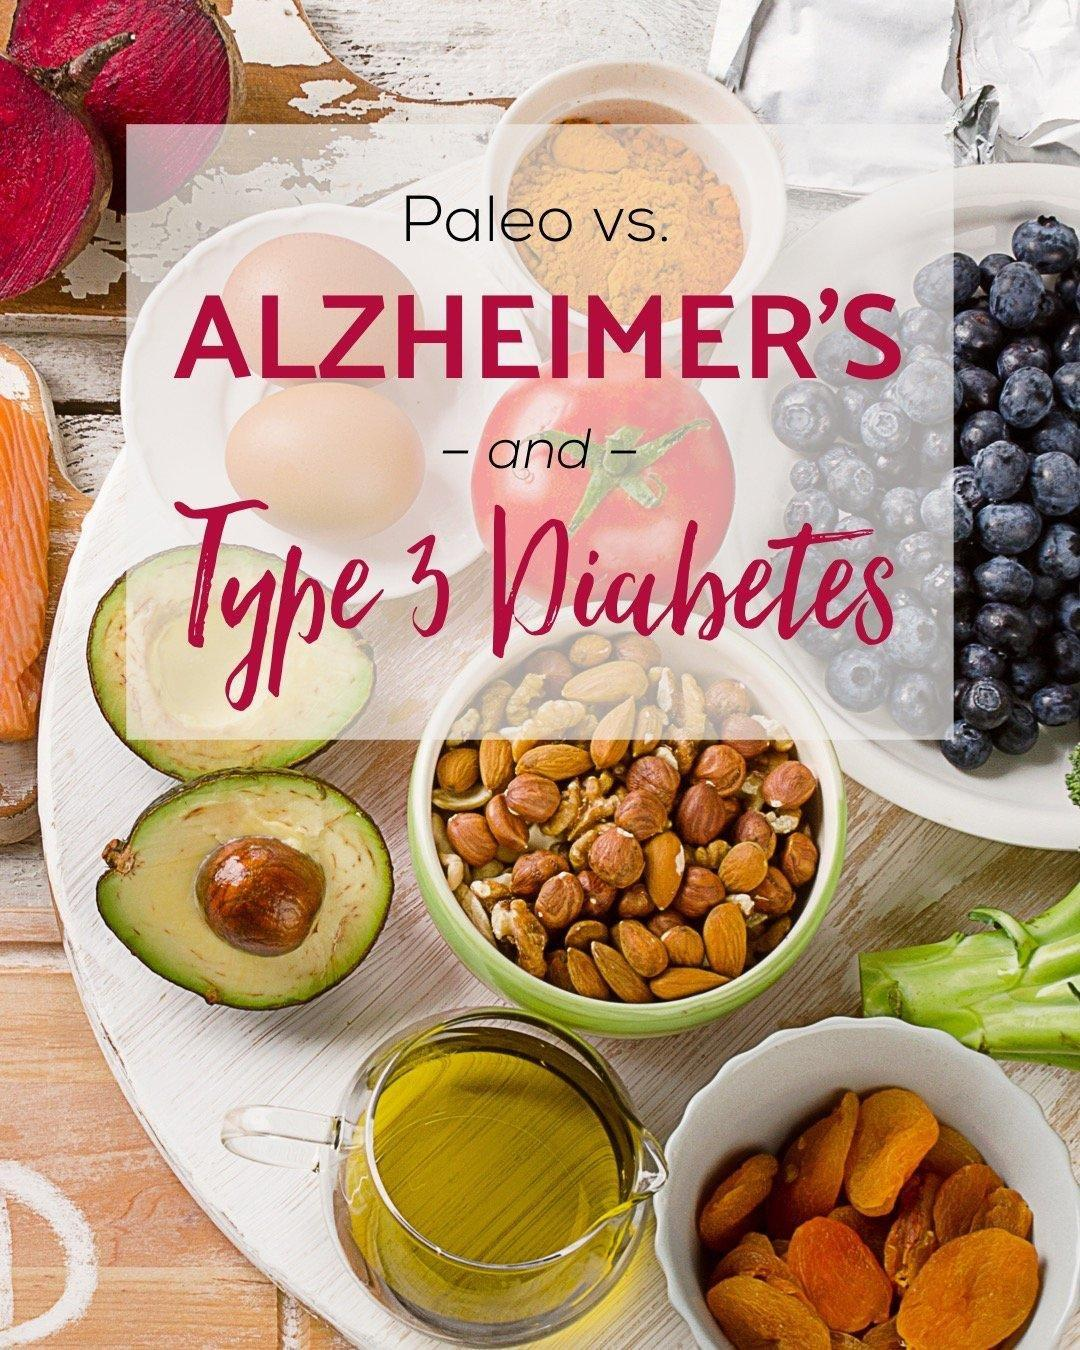 Paleo vs. Alzheimer's & Type 3 Diabetes